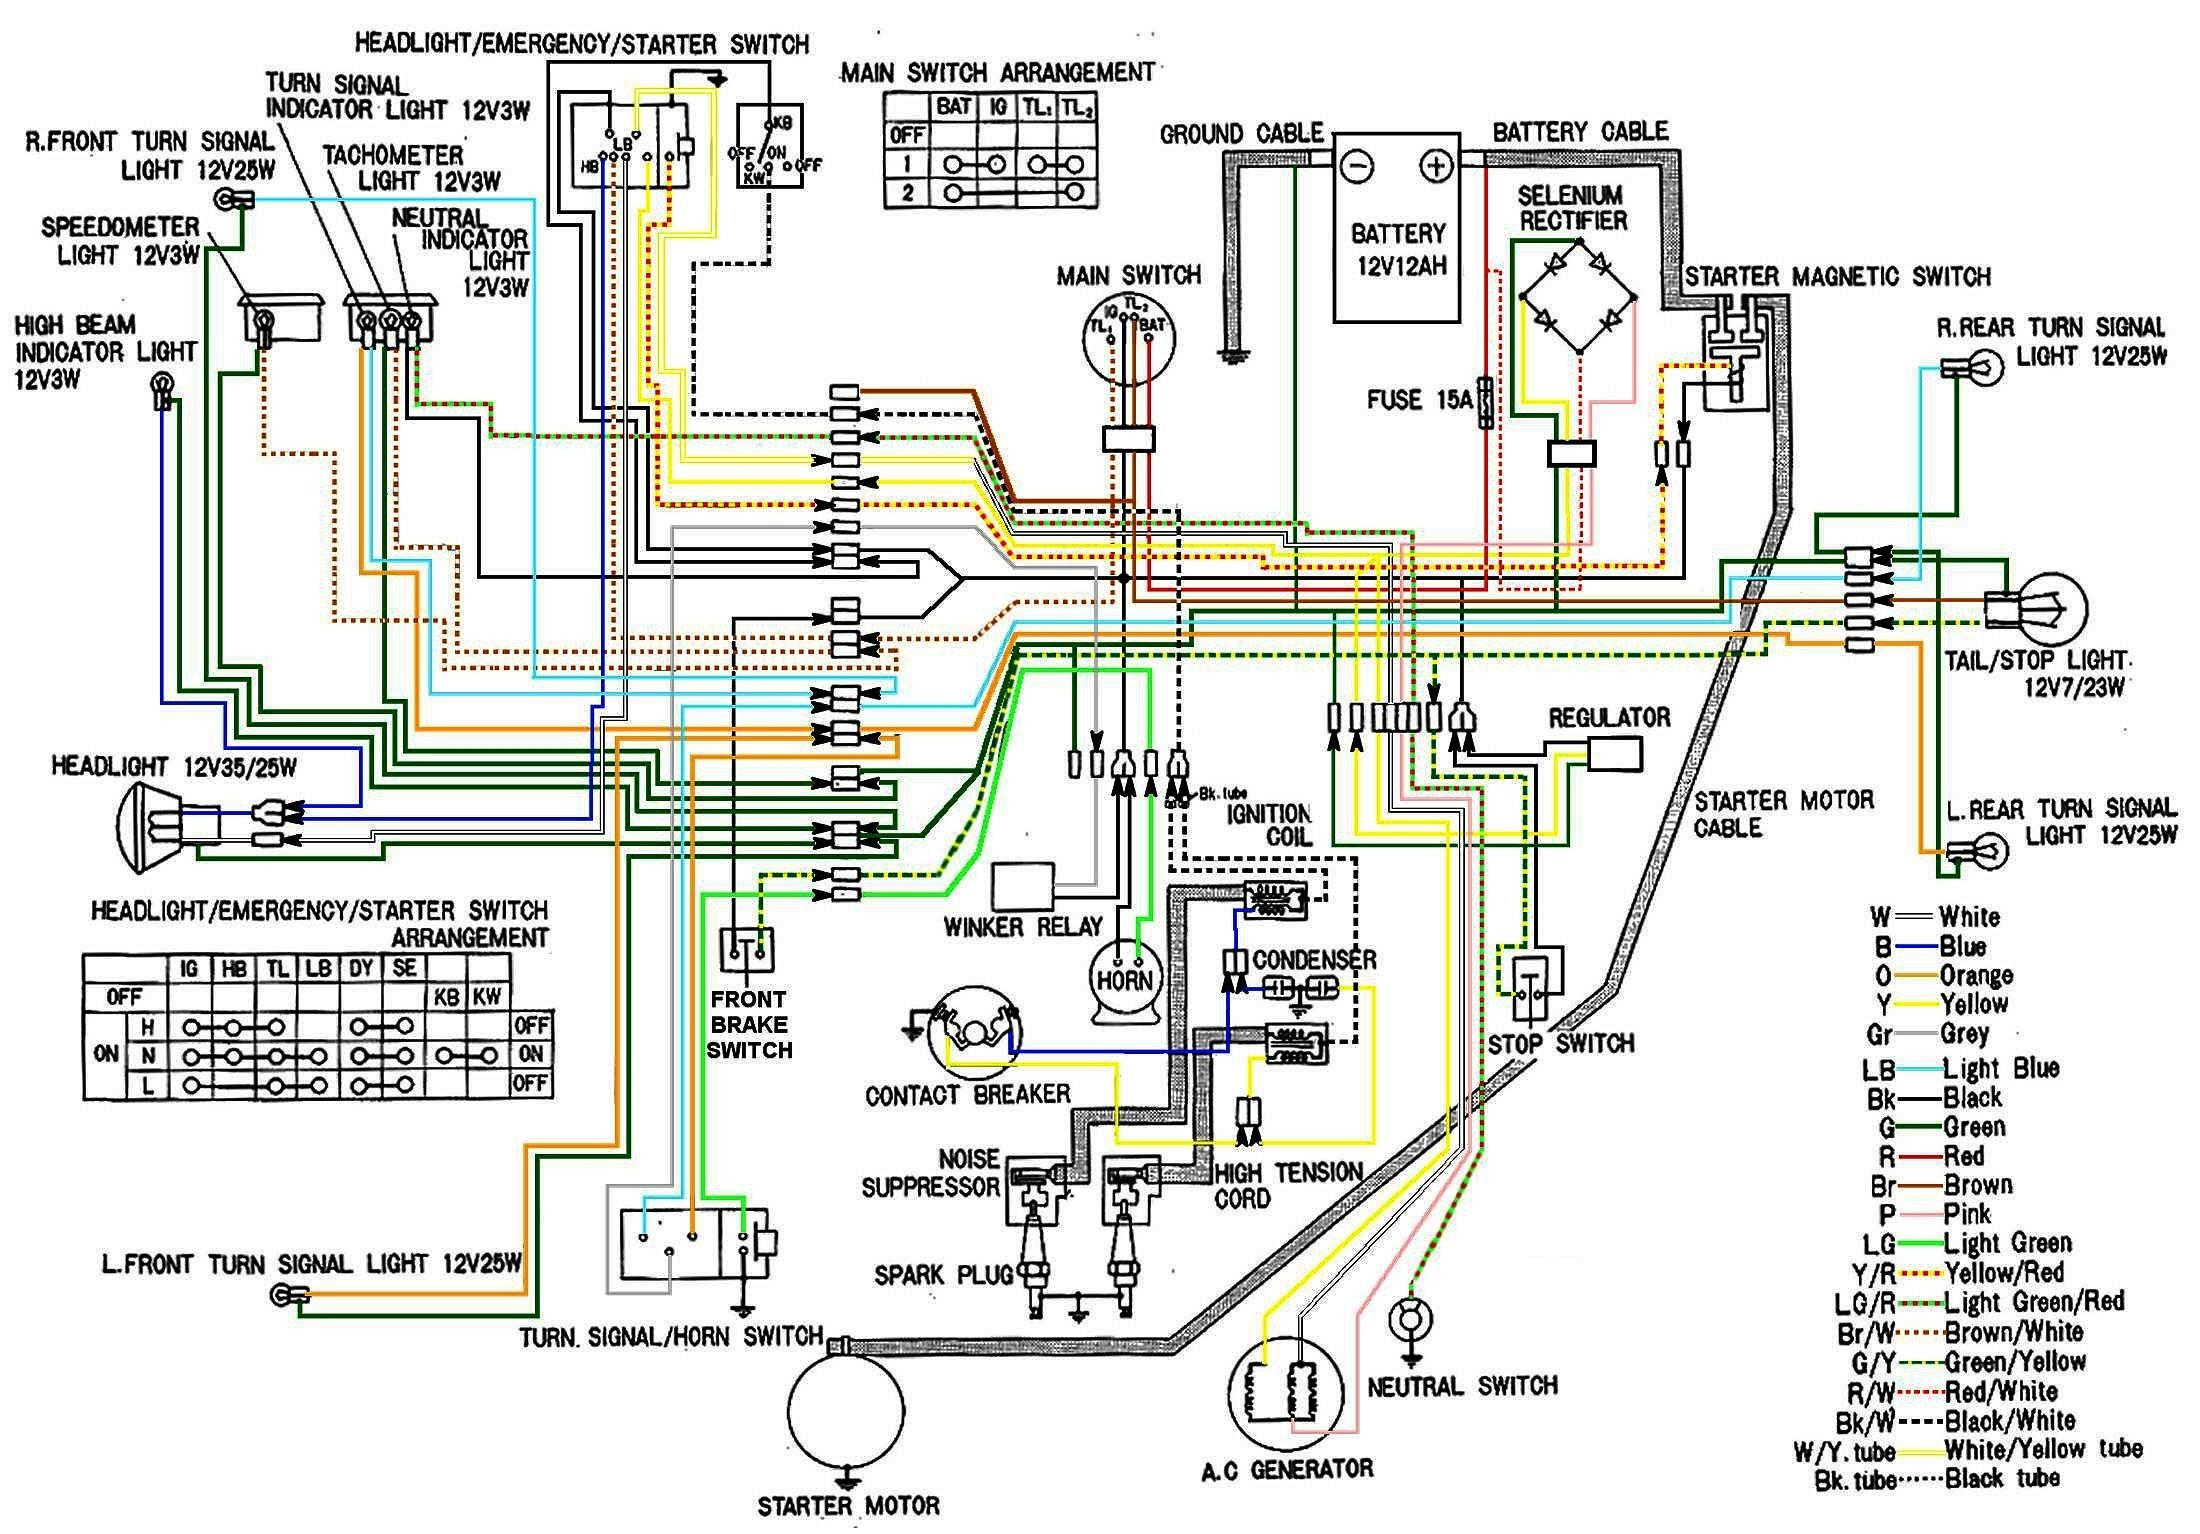 Eagle Eyes Headlights Wiring Circuit And Diagram Hub Lexus Is200 Headlight Free Download Schematic Rh Icodaily Co Is300 Eye Halo